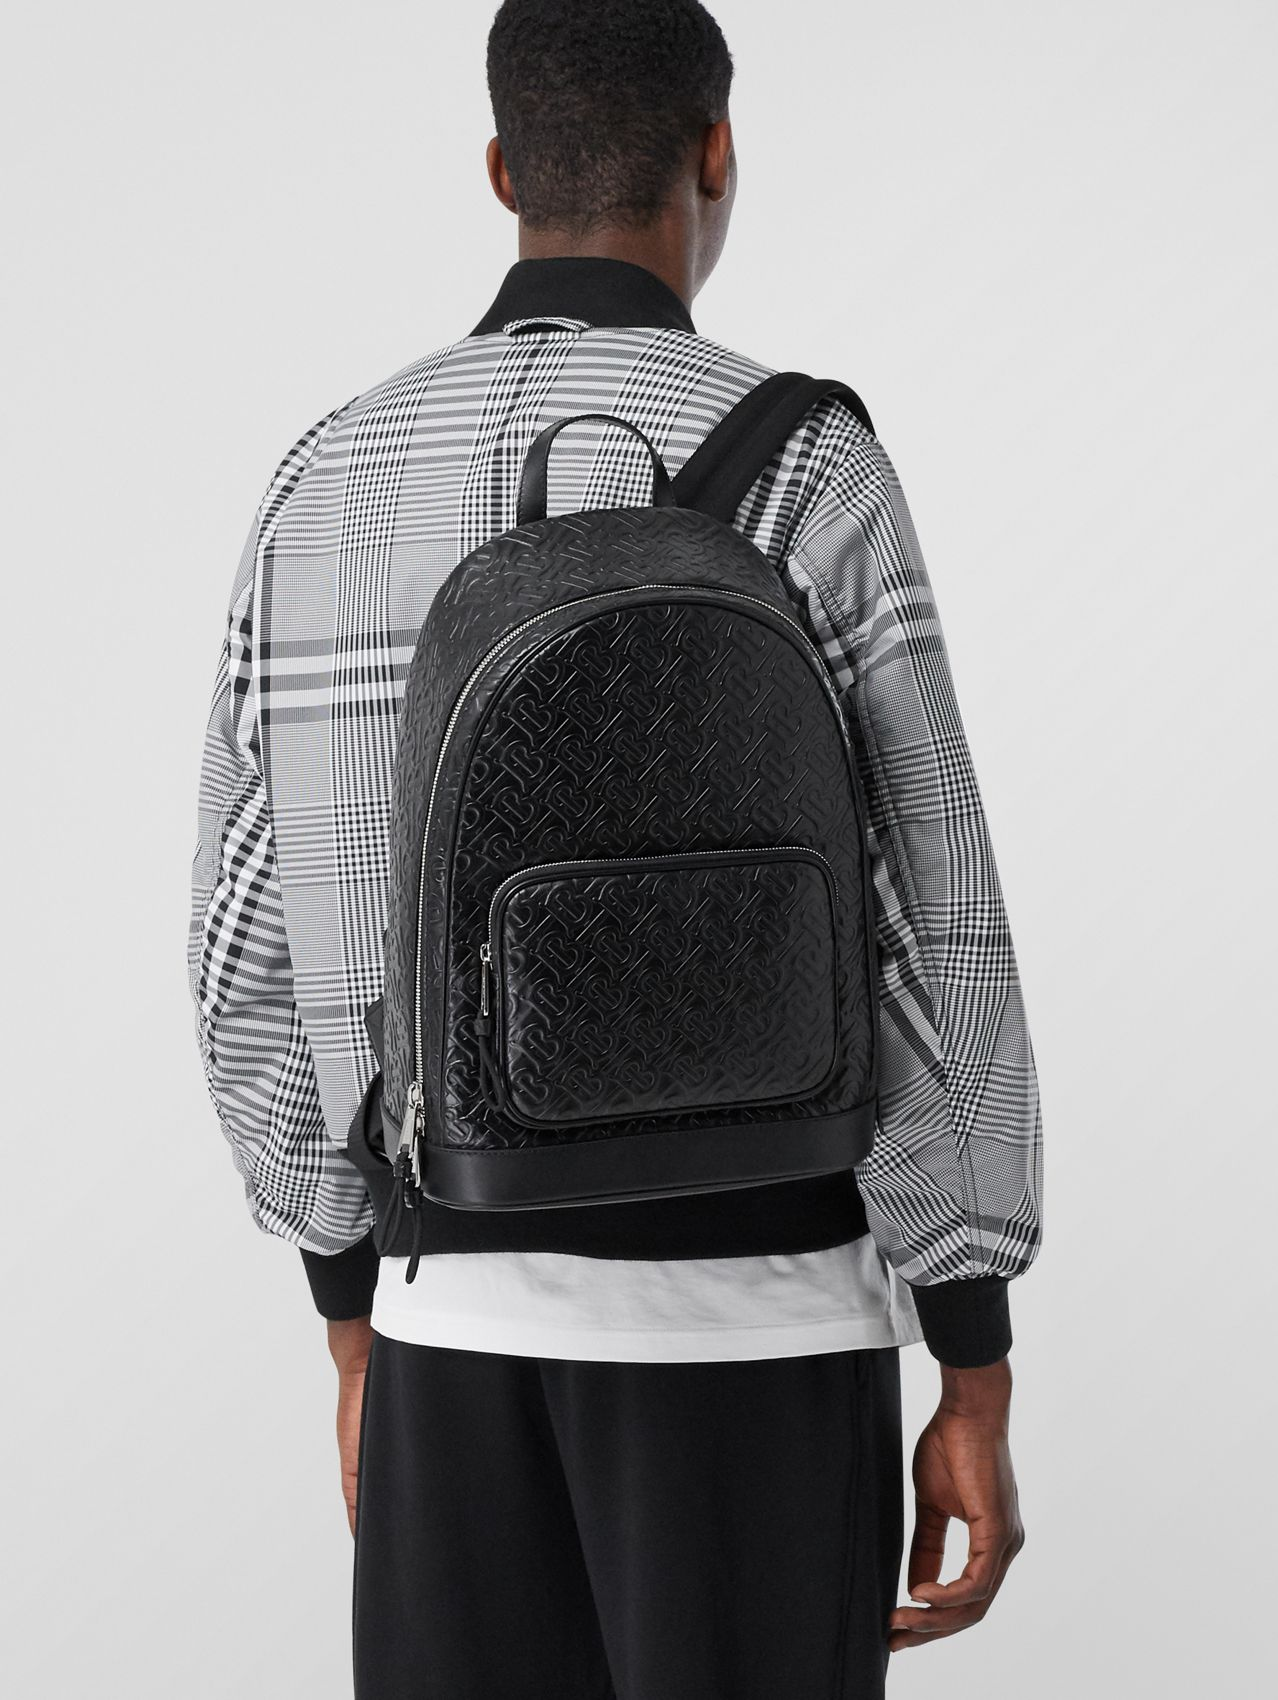 Monogram Leather Backpack in Black